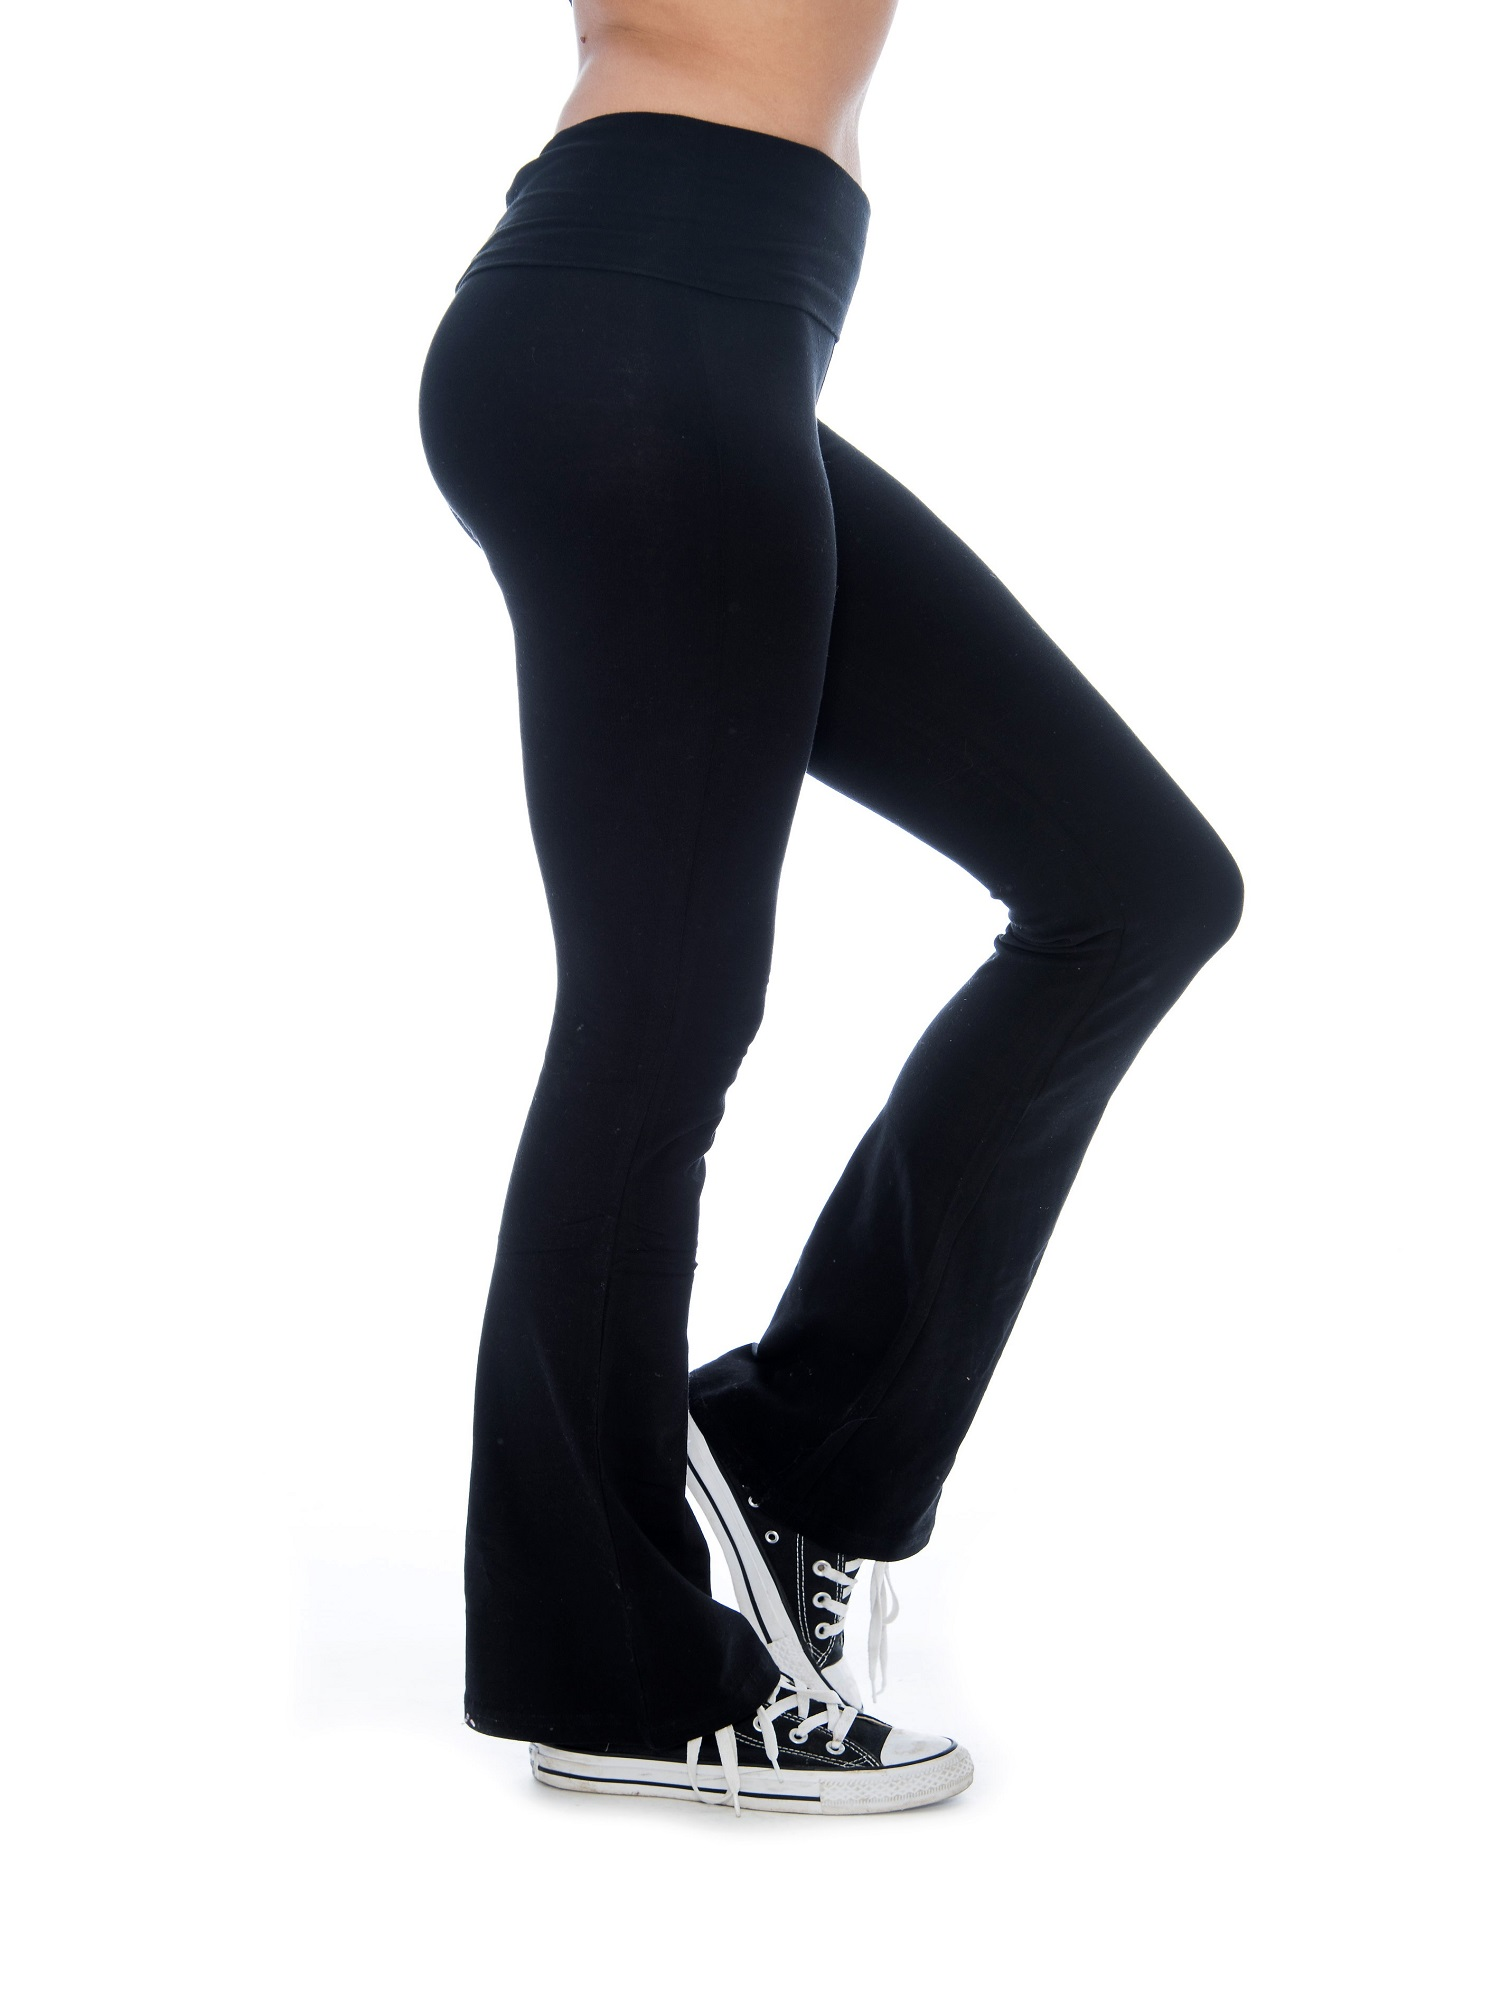 Unique Style Women's Yoga Pants Fold-Over Waistband Flared Boot Leg (Black, Small)